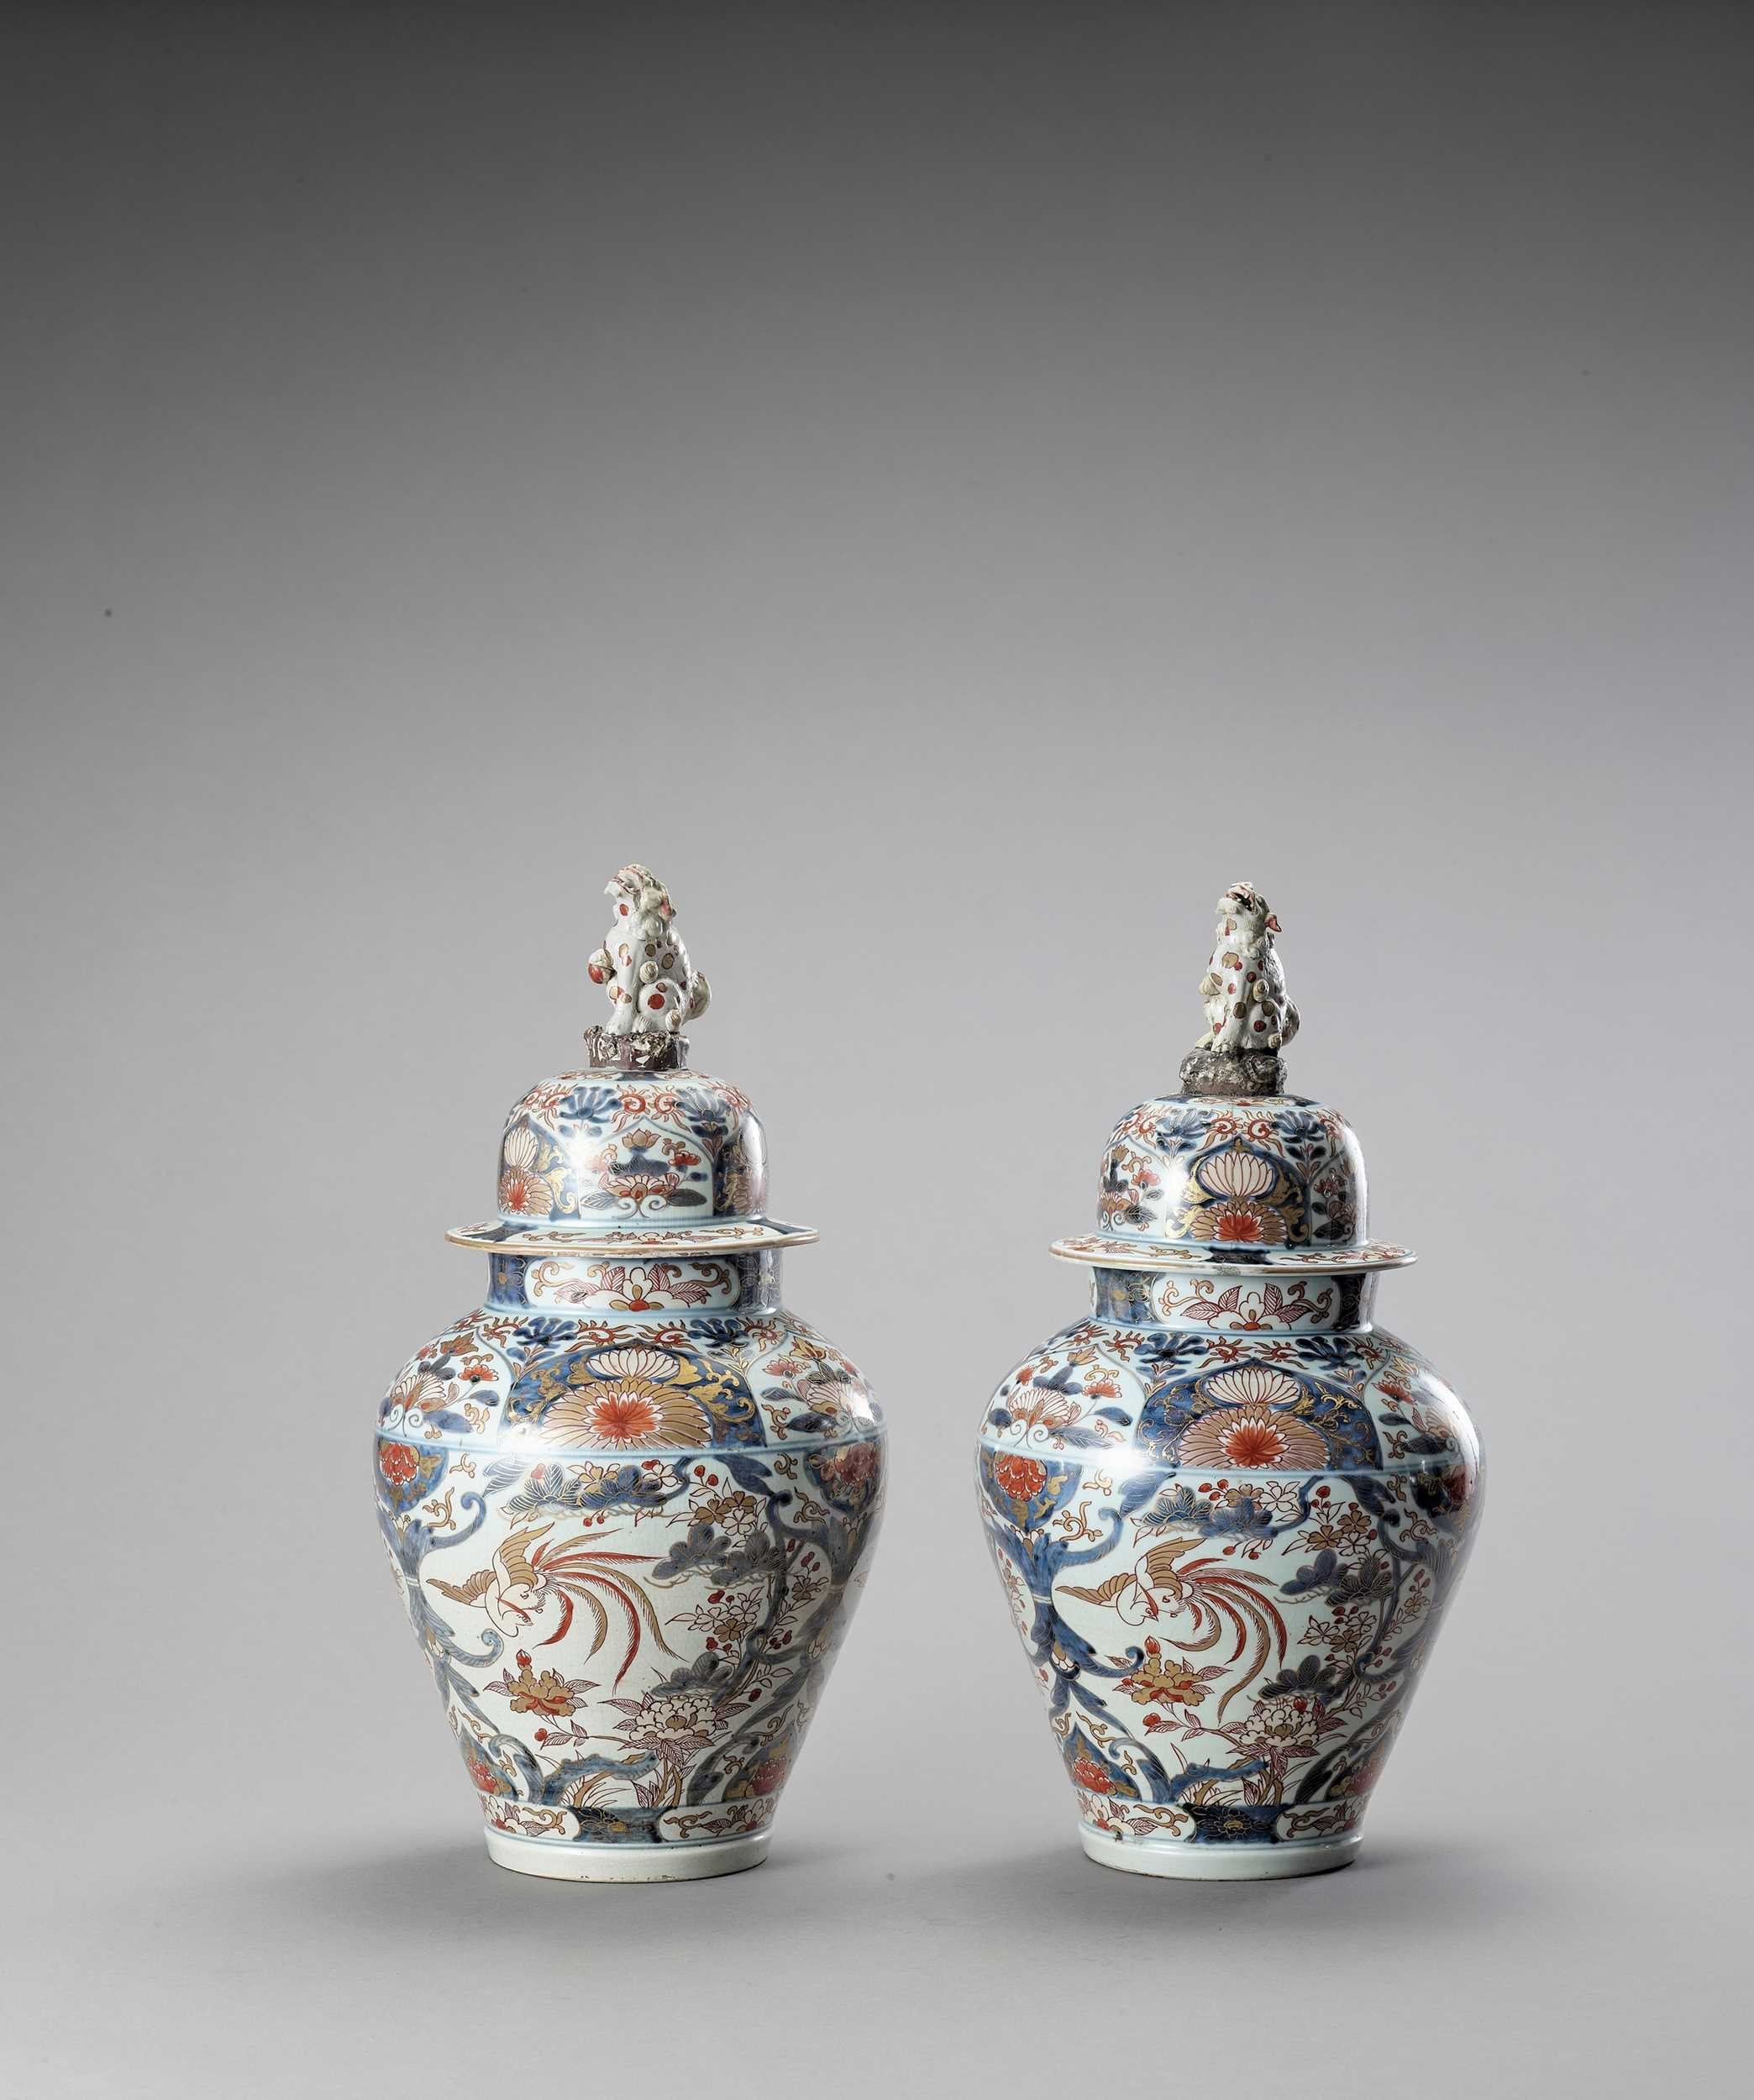 Lot 1061 - A LARGE PAIR OF IMARI PORCELAIN VASES AND COVERS